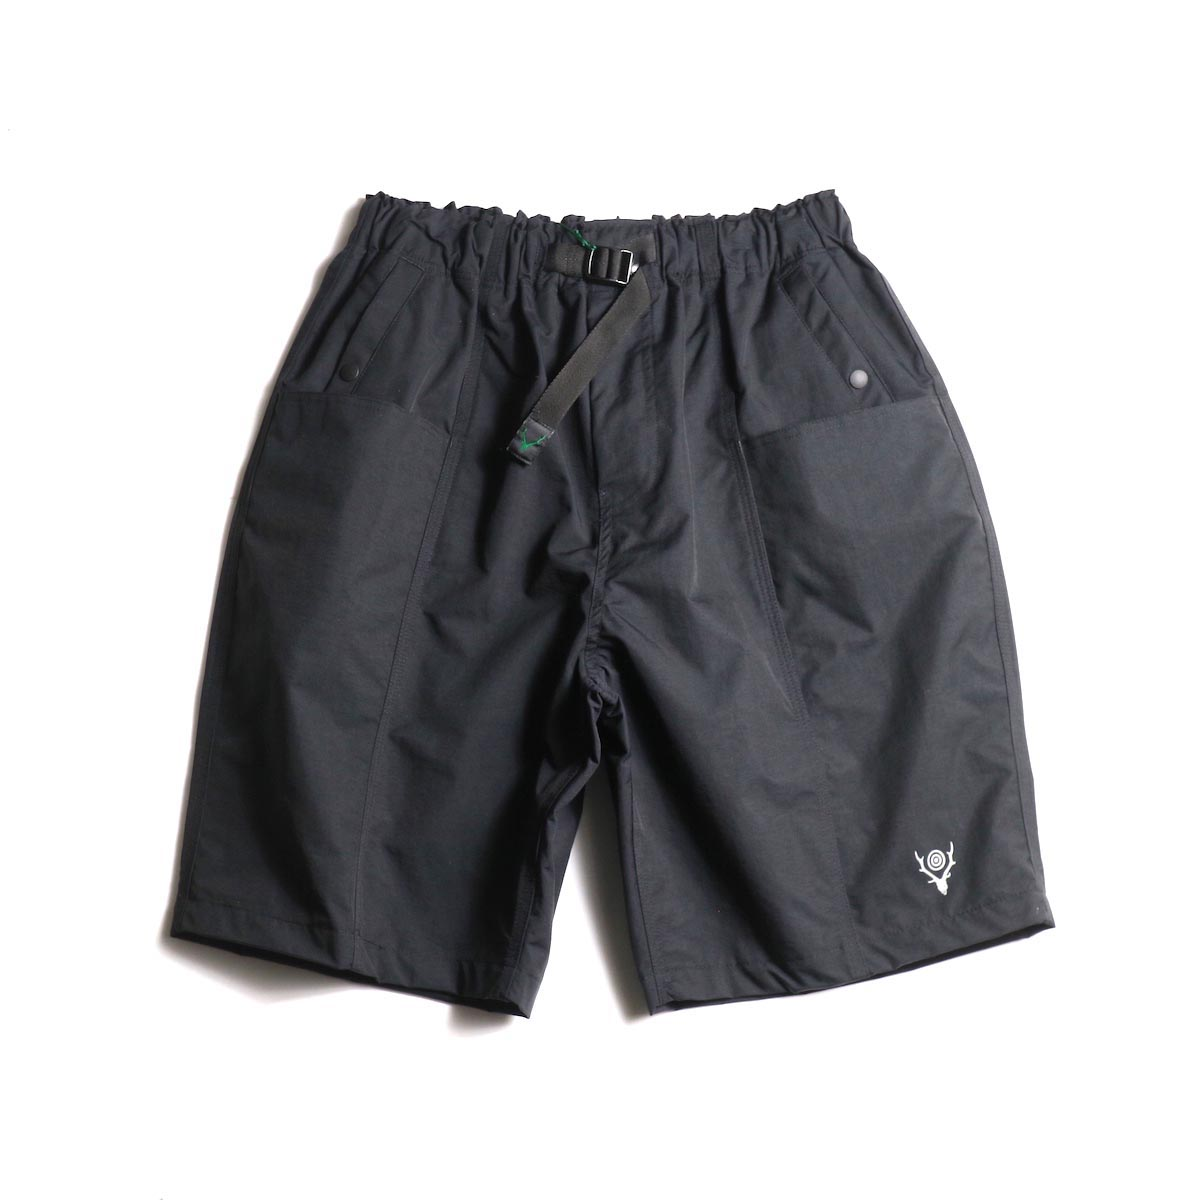 SOUTH2 WEST8 / Belted Center Seam Short -Nylon Tussore (Black) 正面